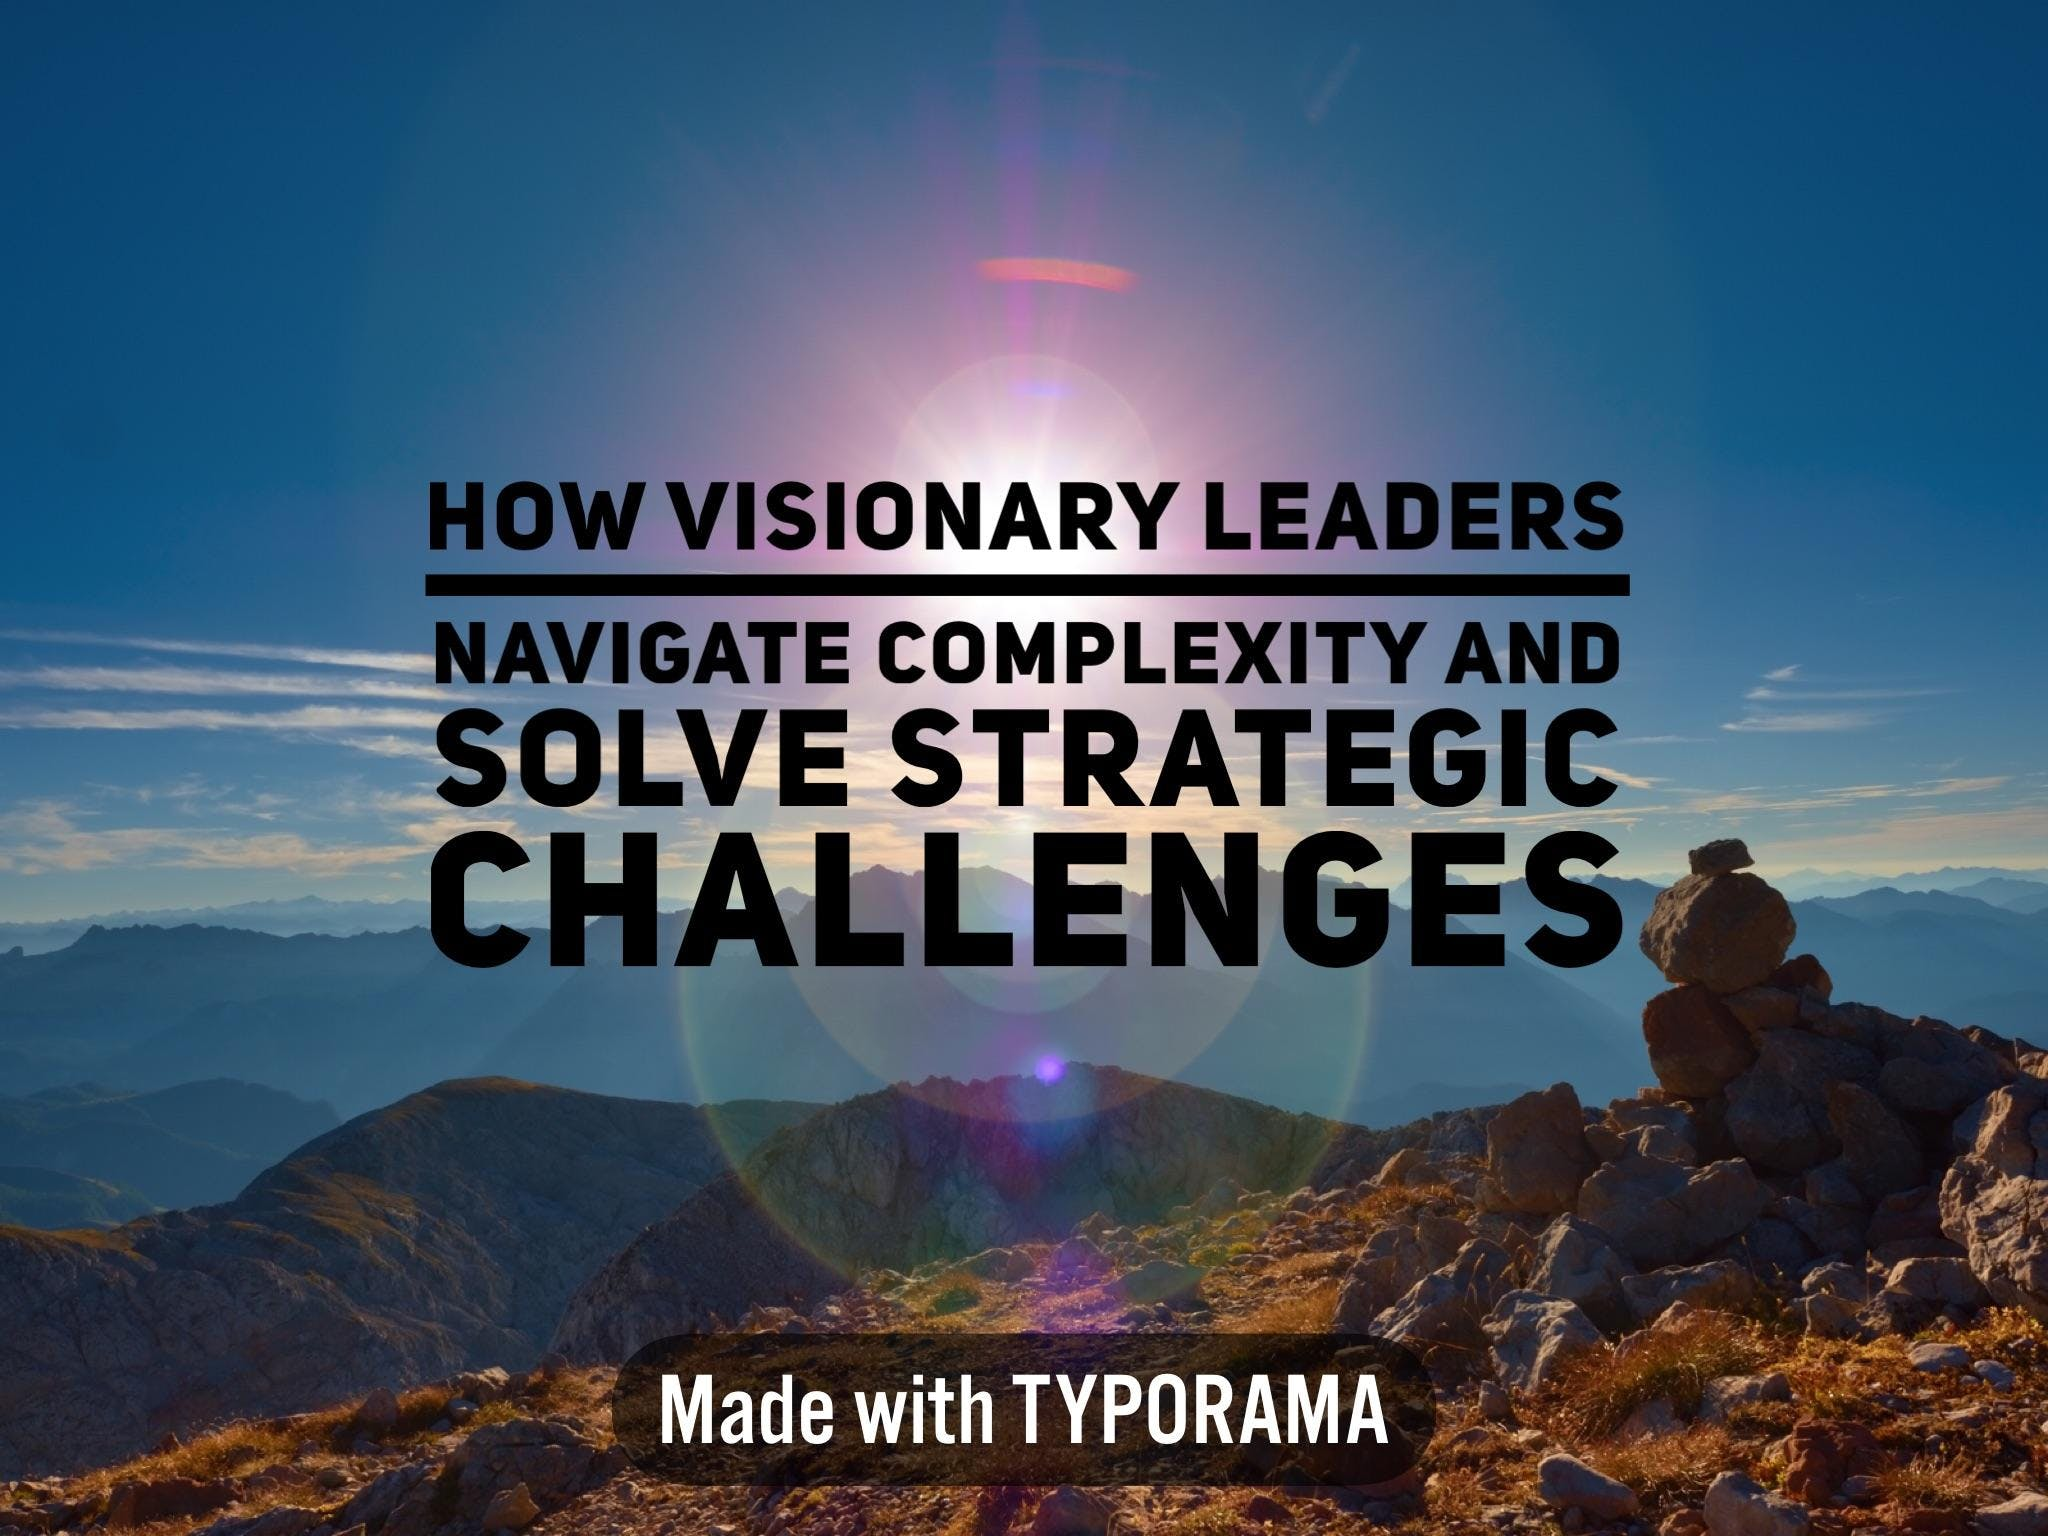 Free Leadership Webinar: How Visionary Leaders Navigate Complexity and Solve Big Strategic Challenges (Phoenix)